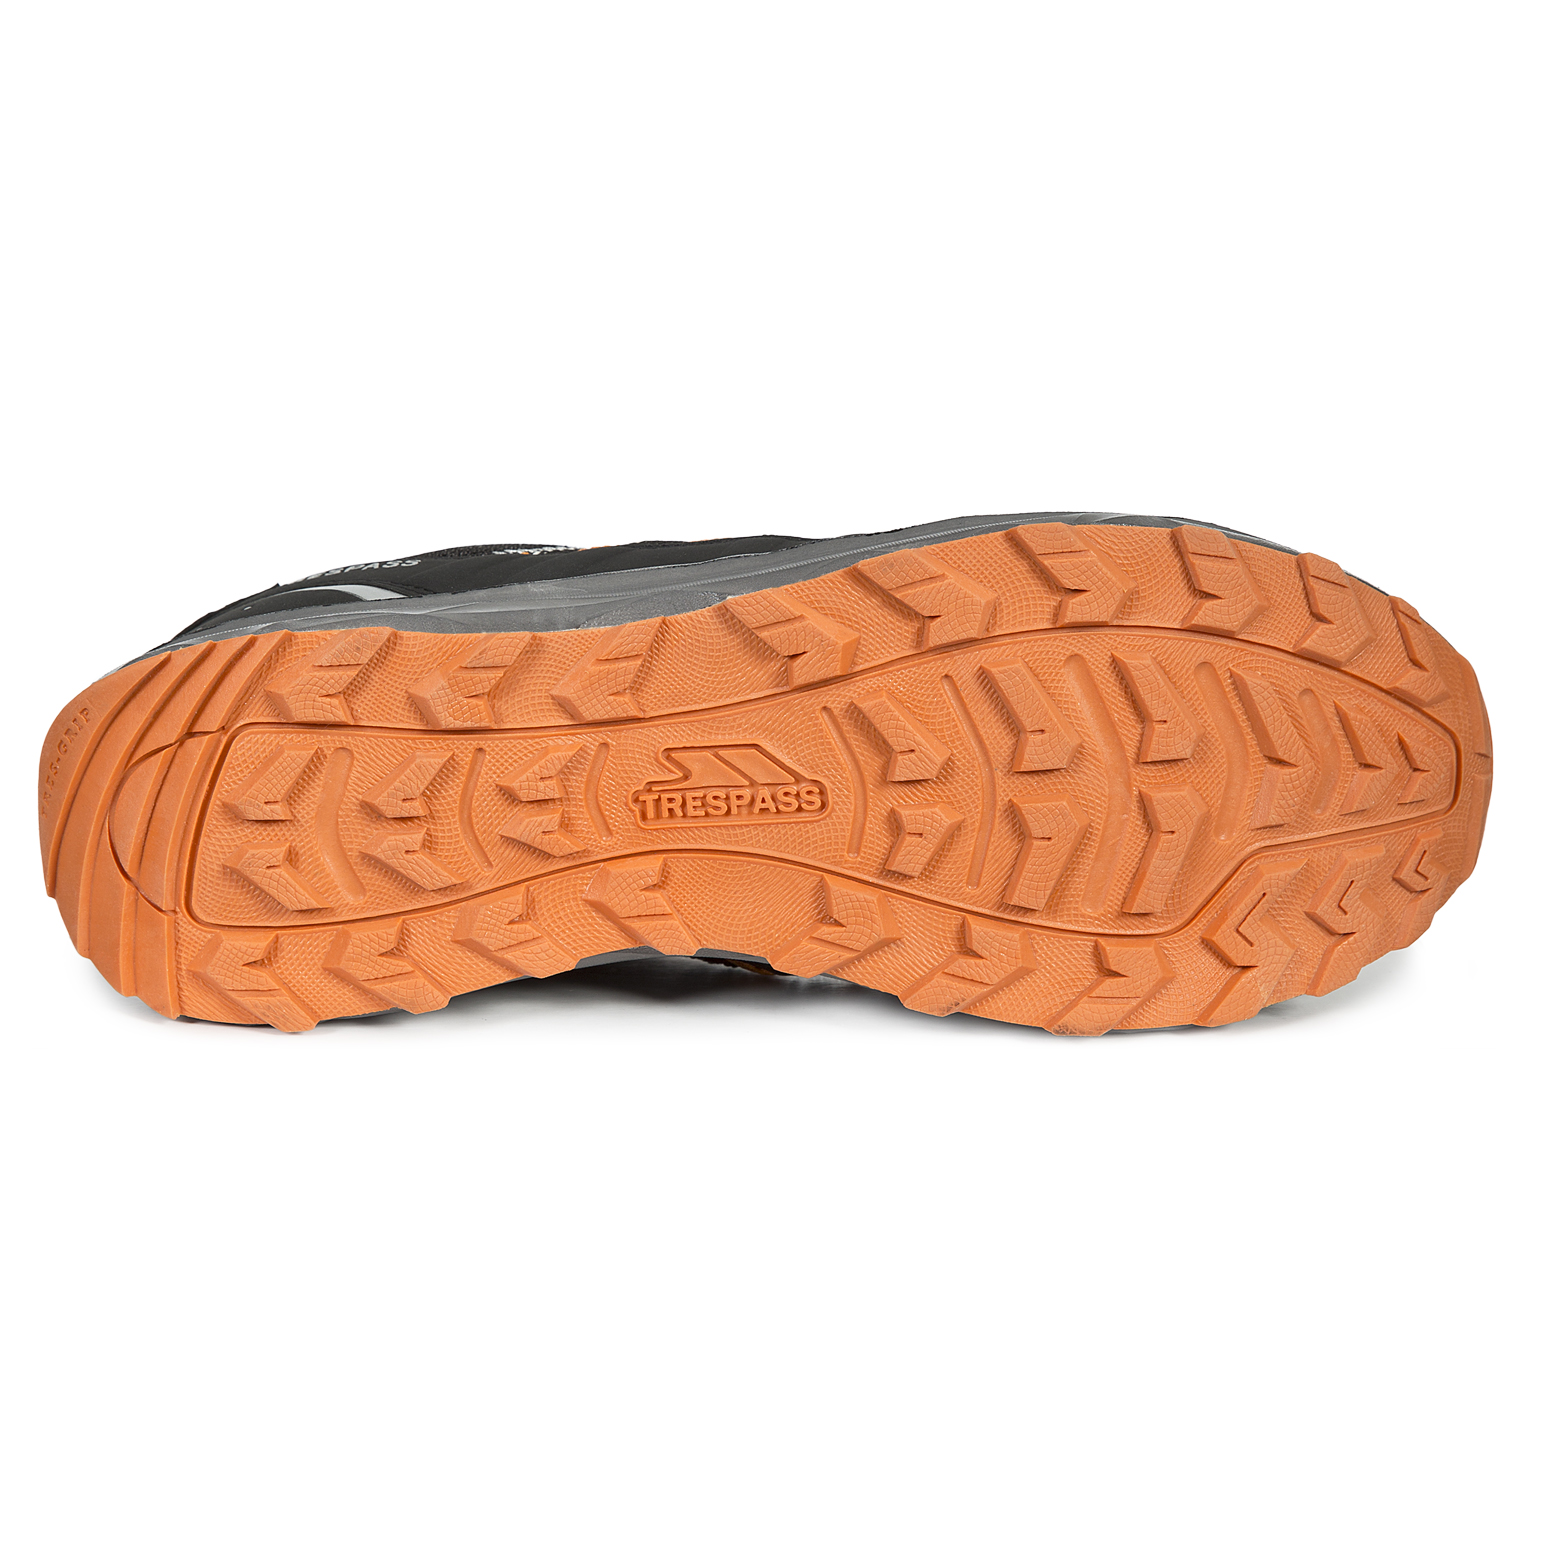 Trespass-Pace-Mens-Active-Trainers-Sports-Lace-Up-Shoes thumbnail 5